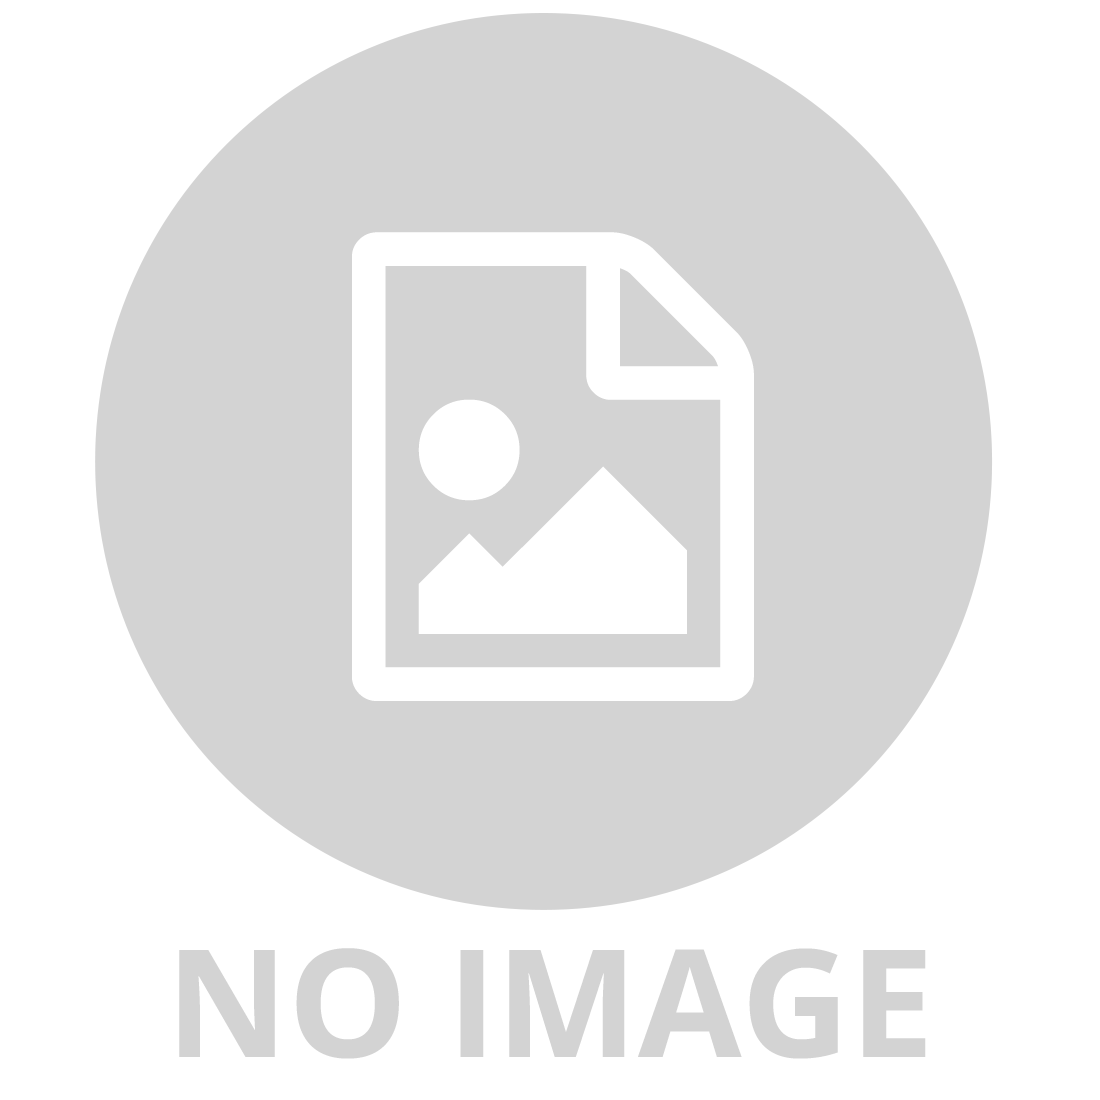 PLAYWORLD PLASTIC FREE STANDING OR ADD ON SLIDE